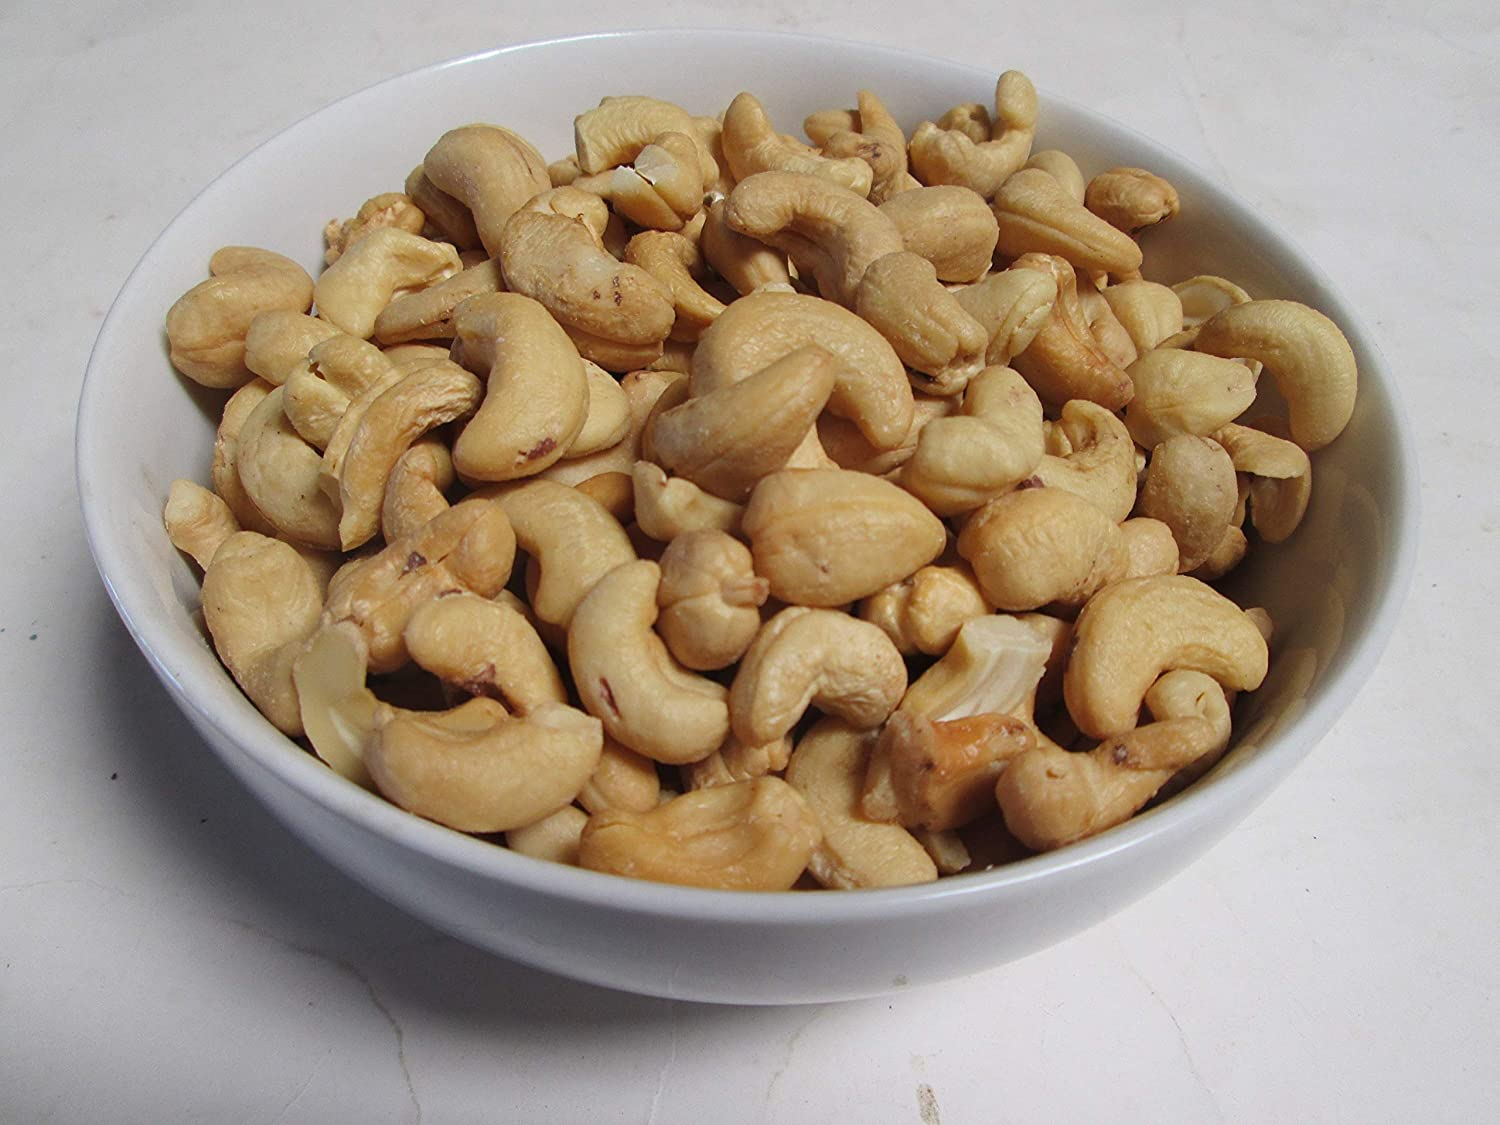 Roasted Salted Whole Cashews discount lbs 25 Cheap mail order sales 320CT